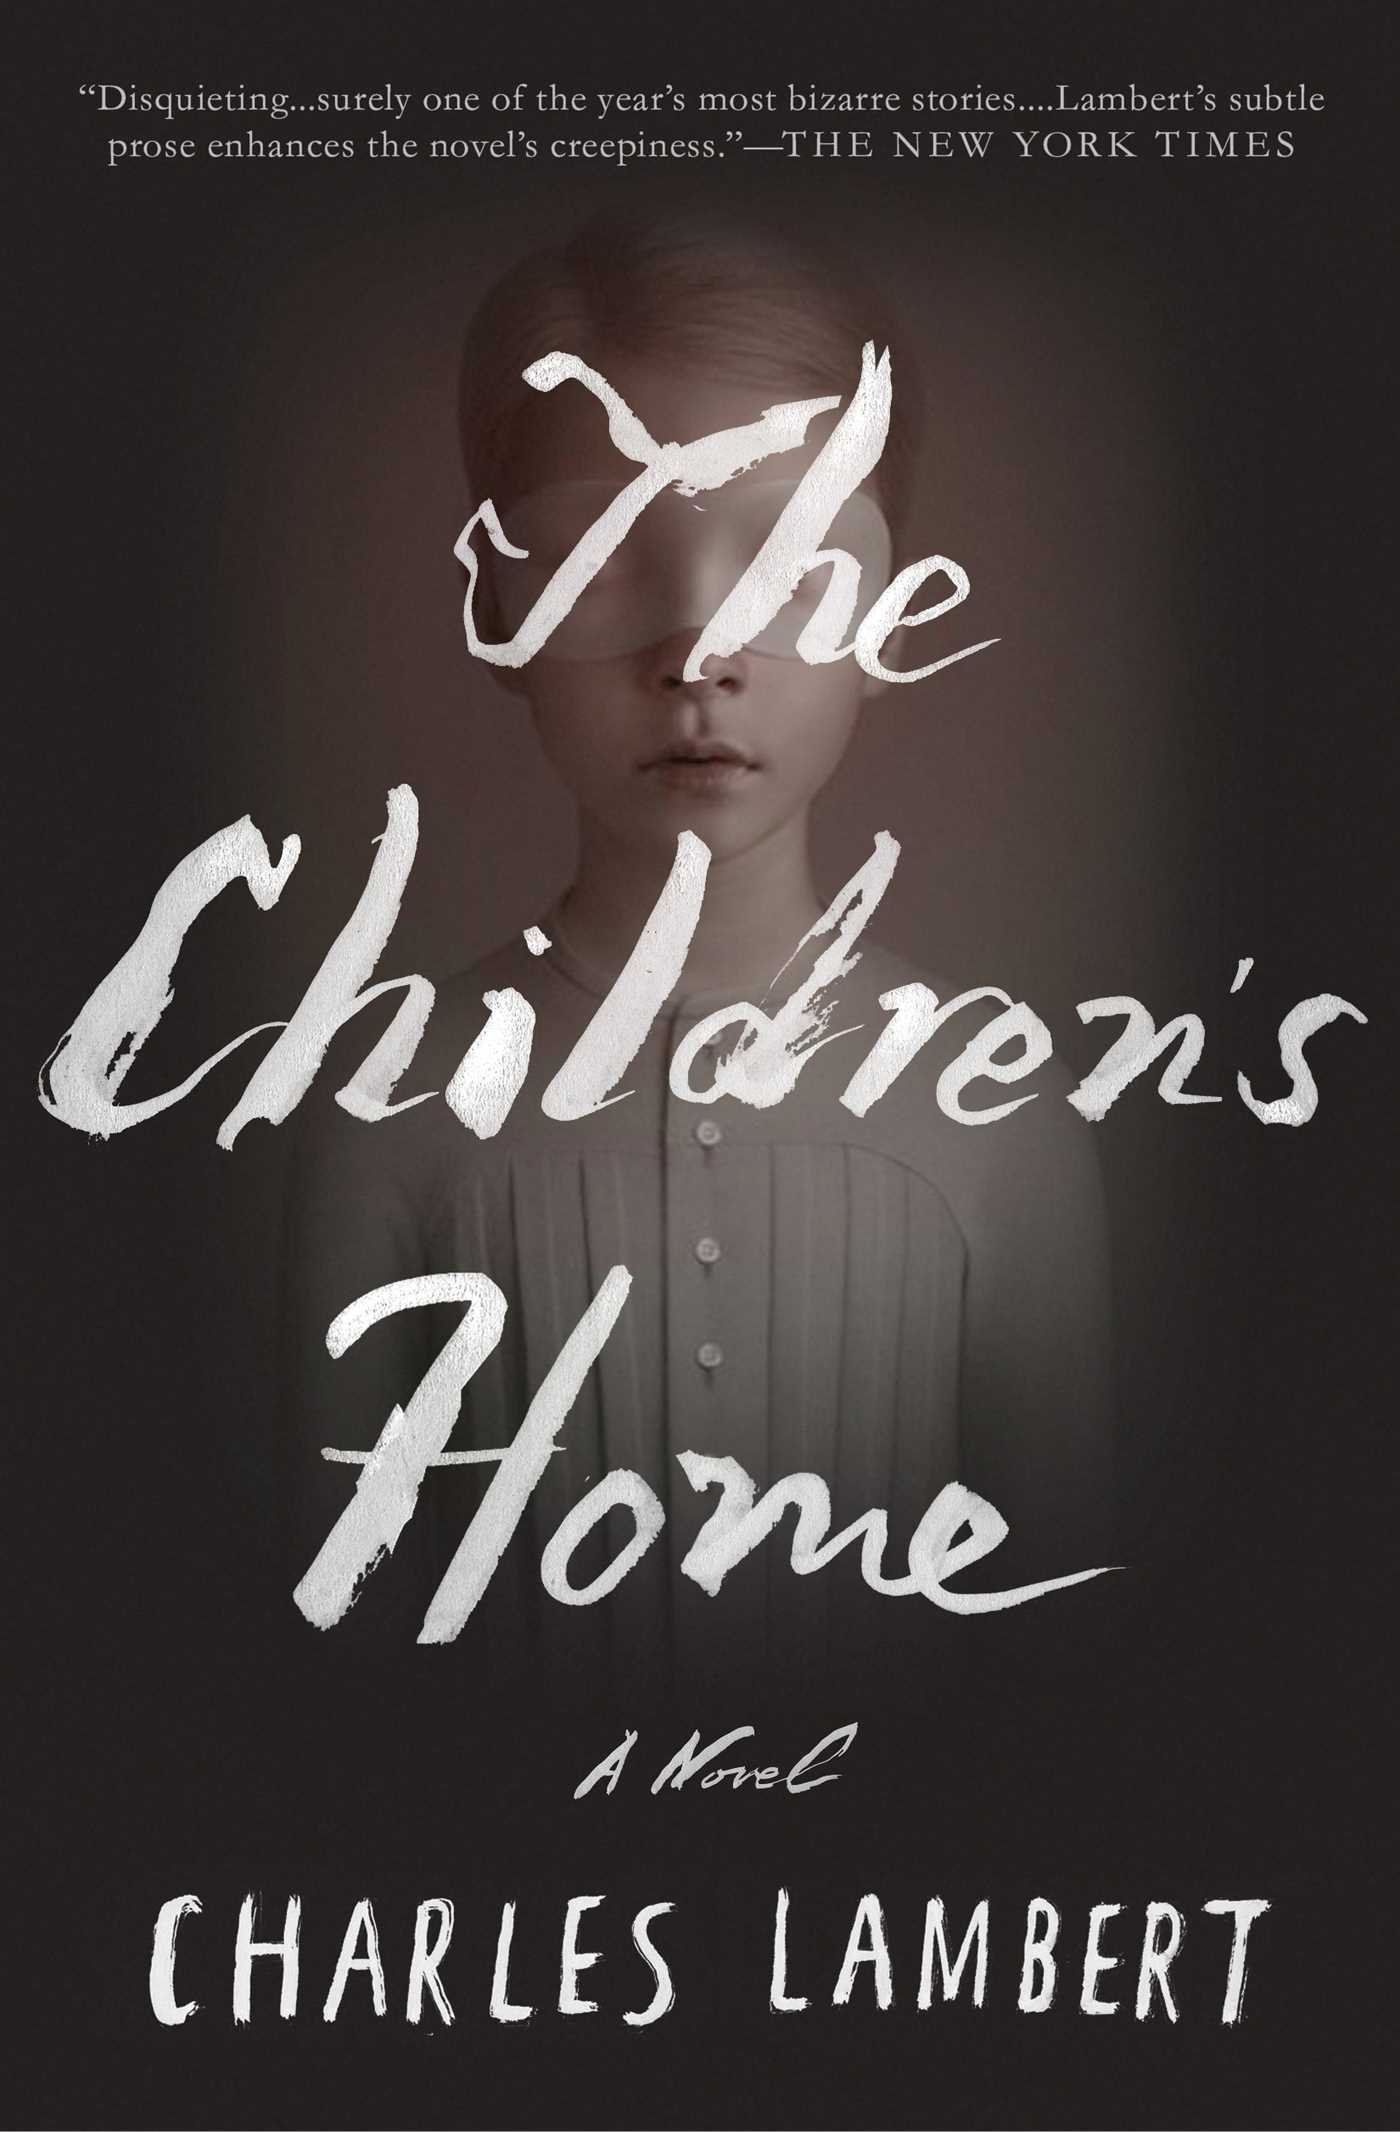 THE CHILDREN'S HOME  Literary fiction, 217 pages Scribner US, Aardvark Bureau UK, Jan 2016  Morgan is a shockingly disfigured recluse who never leaves the country mansion he is heir to.  But his solitary existence is disturbed when a young boy and girl arrive in the house, as if from nowhere. As the cluster of strangely wise children explore the corridors and abandoned rooms of the house, they reveal to Morgan a cabinet of curiosities – and bitter secrets of his own life.   'A one-of-a-kind literary horror story.' –  Kirkus Reviews,  Starred review